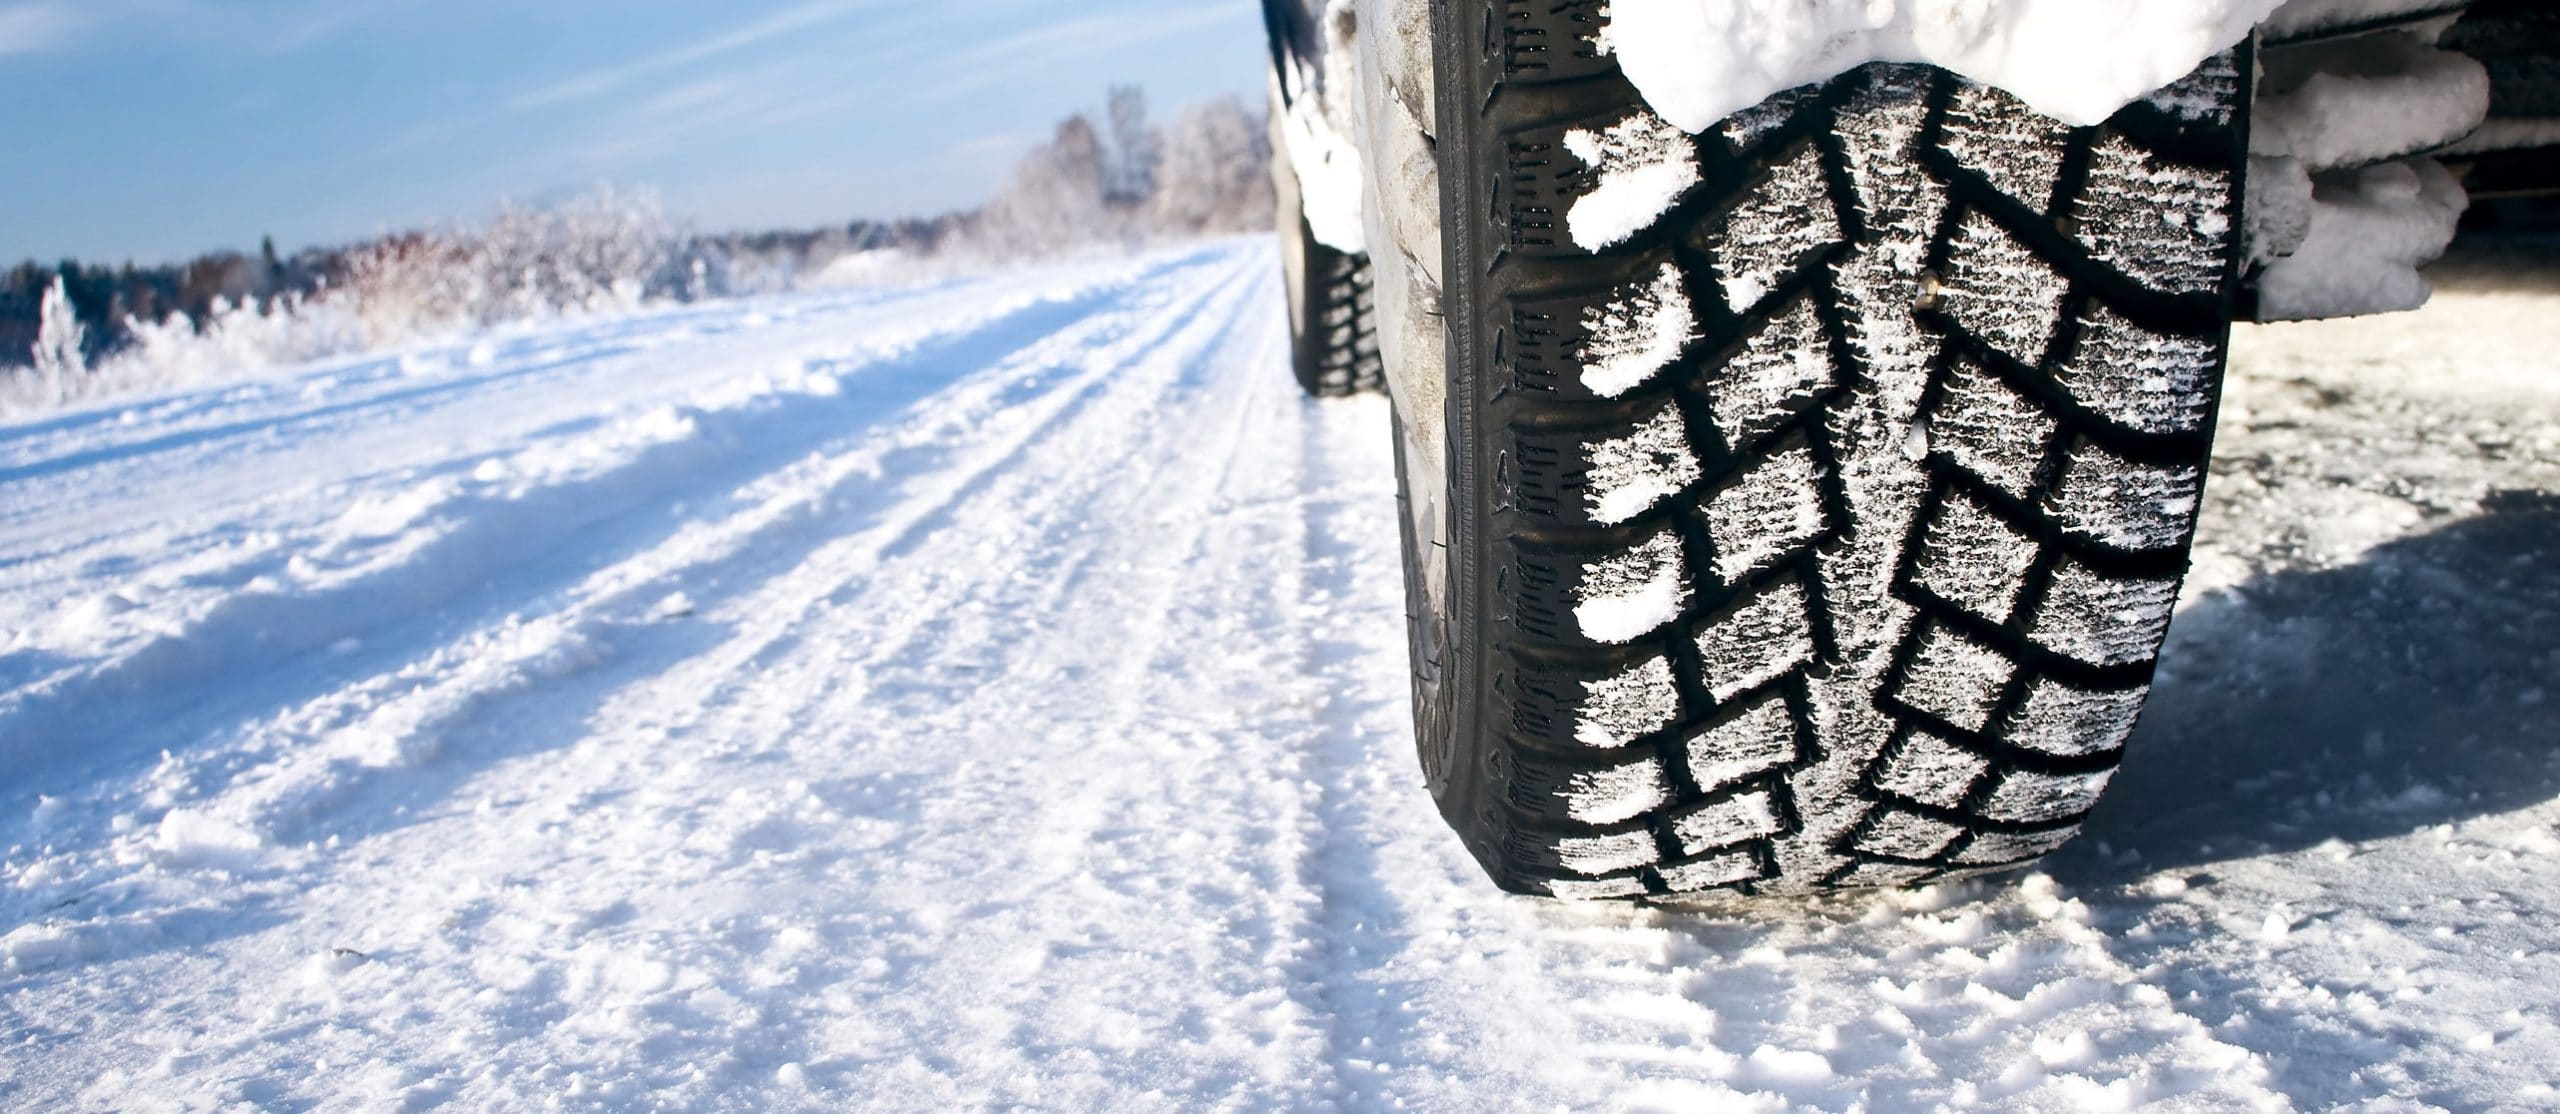 View of vehicle tires on winter morning